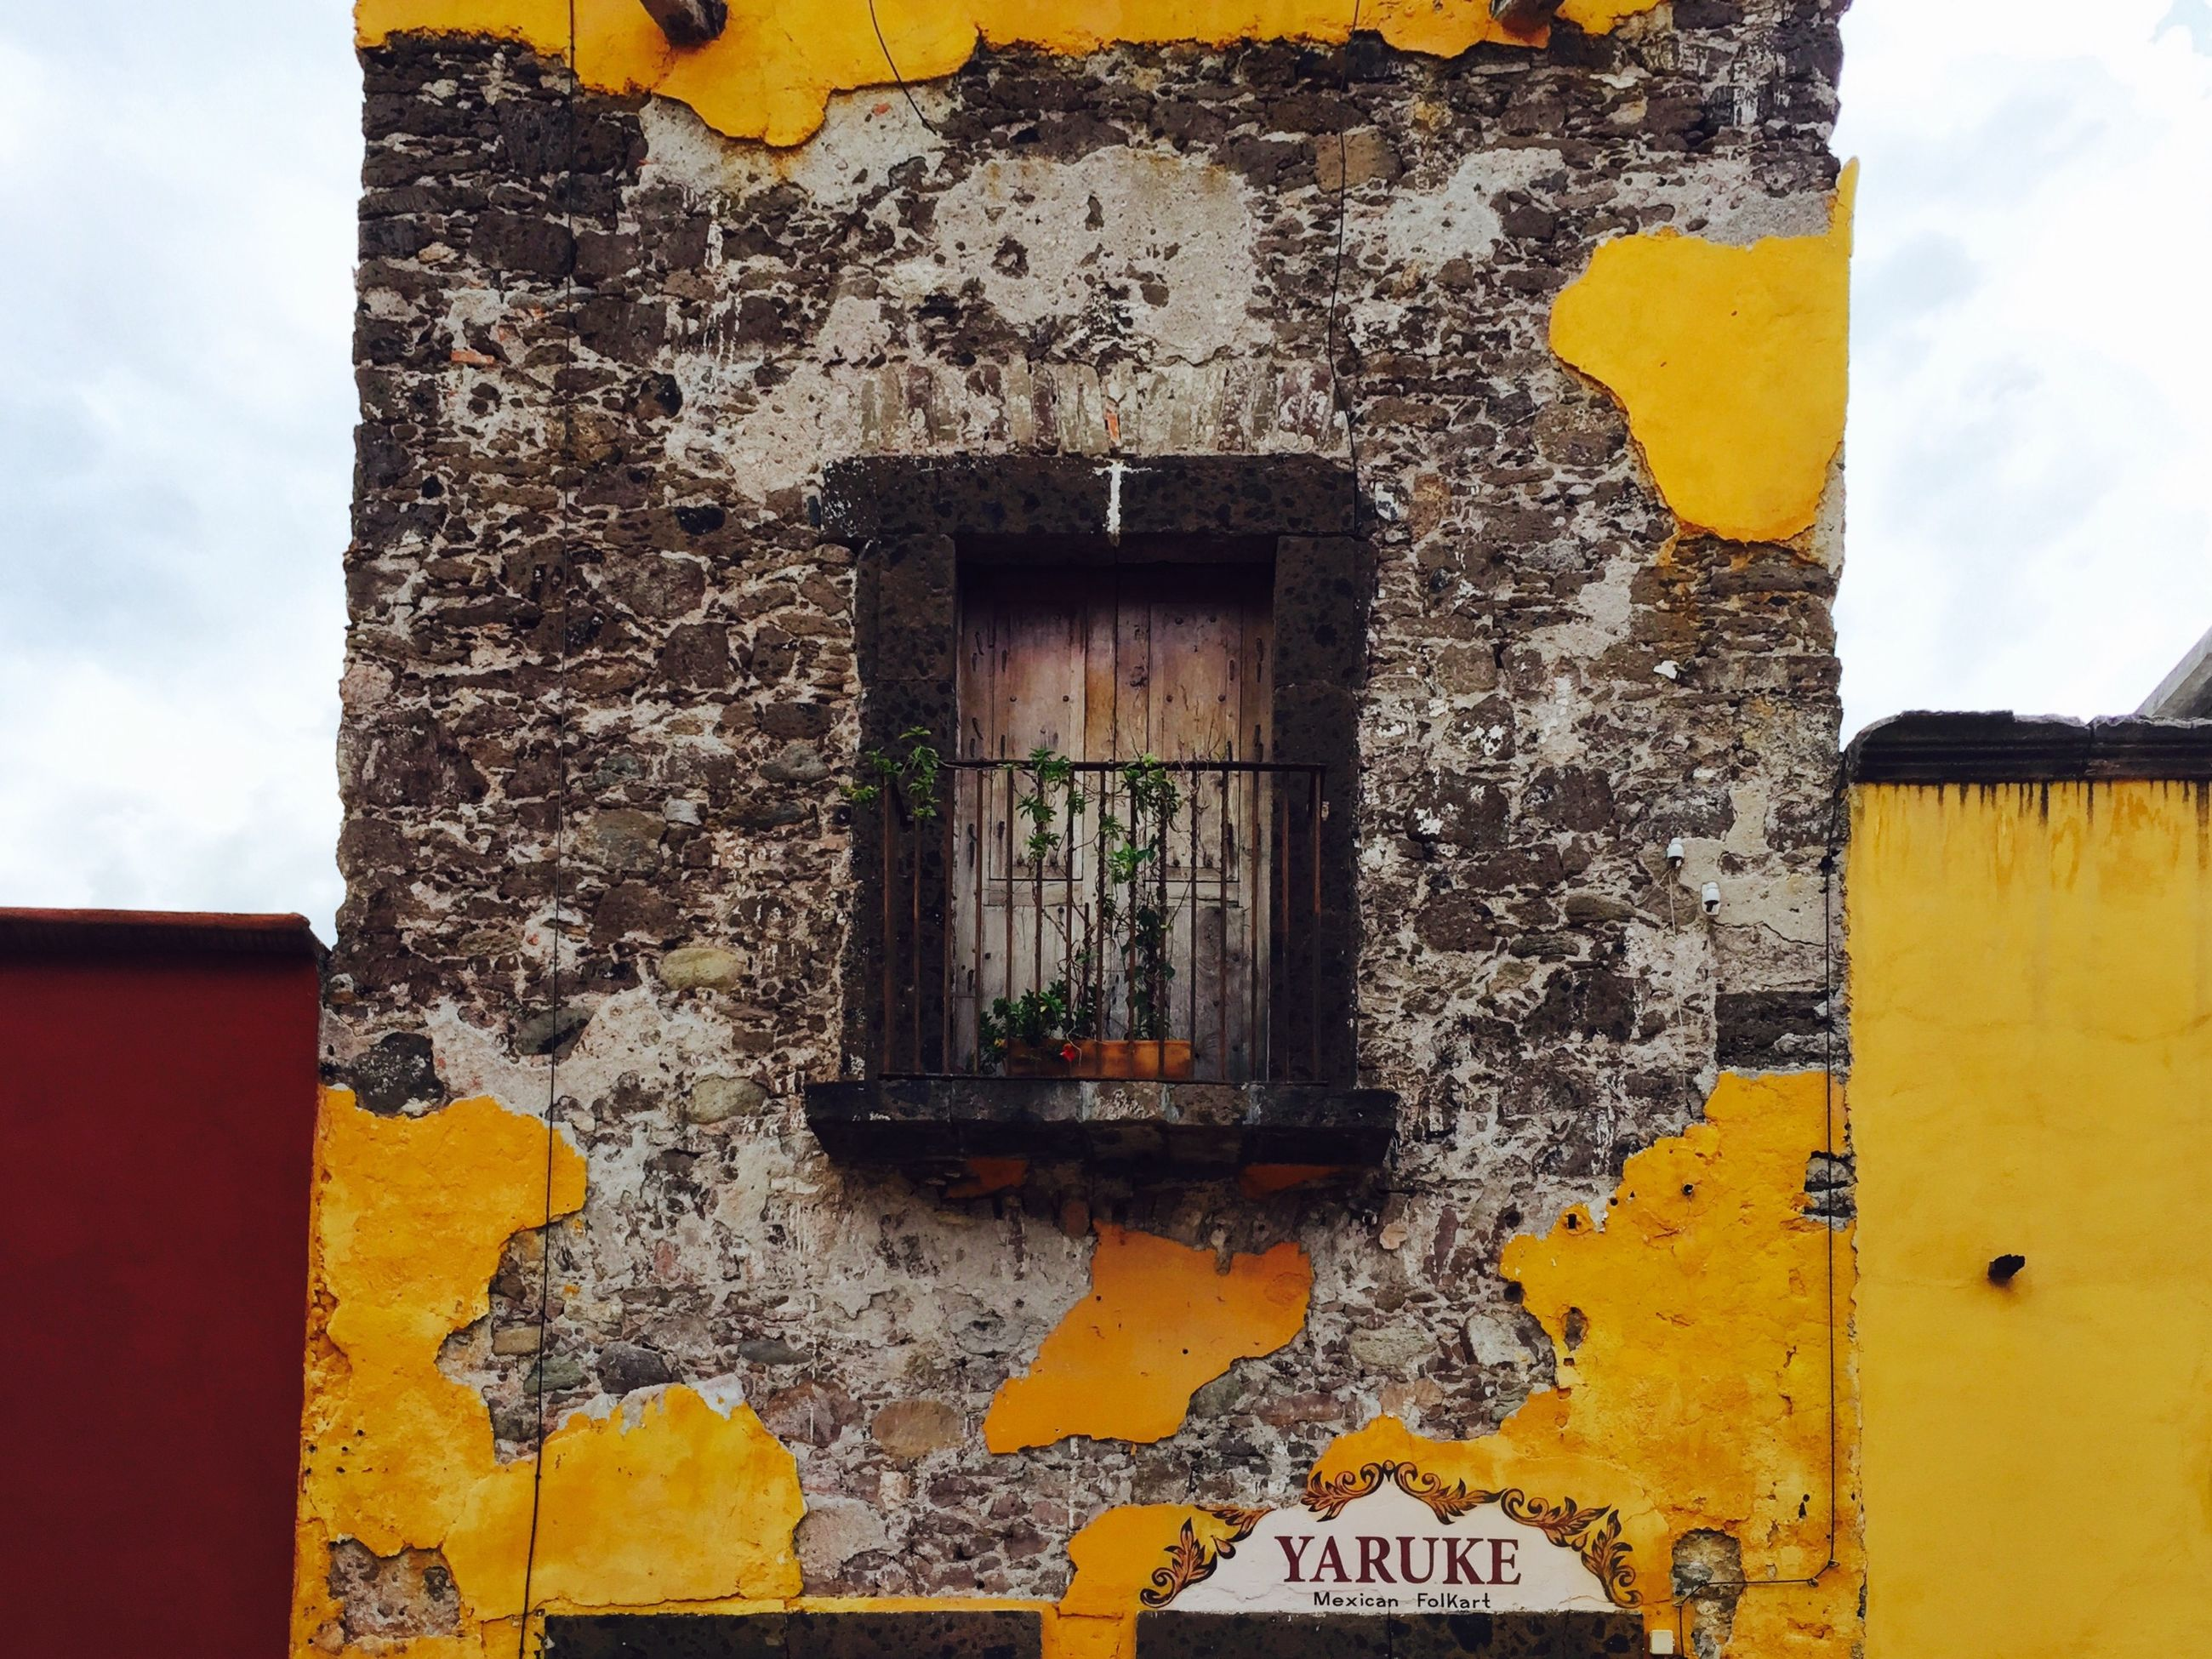 architecture, built structure, yellow, building exterior, weathered, old, house, door, wall - building feature, damaged, window, closed, abandoned, outdoors, residential structure, deterioration, day, no people, run-down, close-up